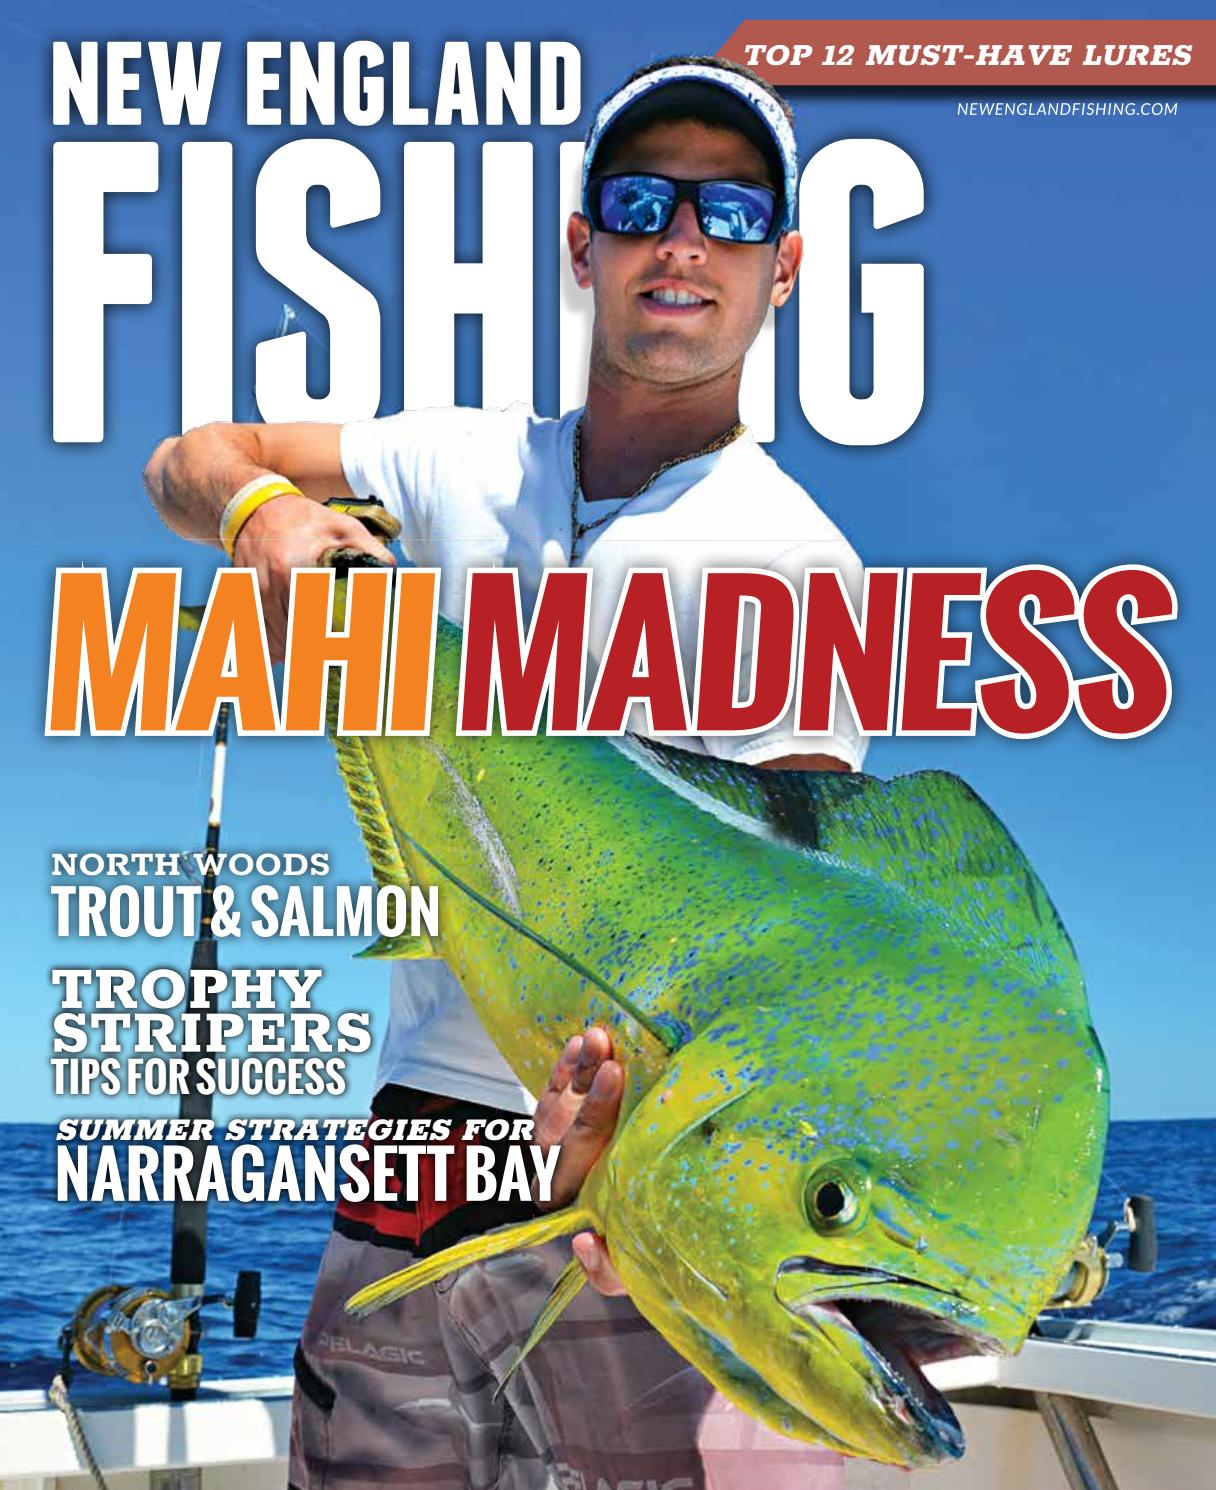 New England Fishing 2017 by Formerly: Lighthouse Media